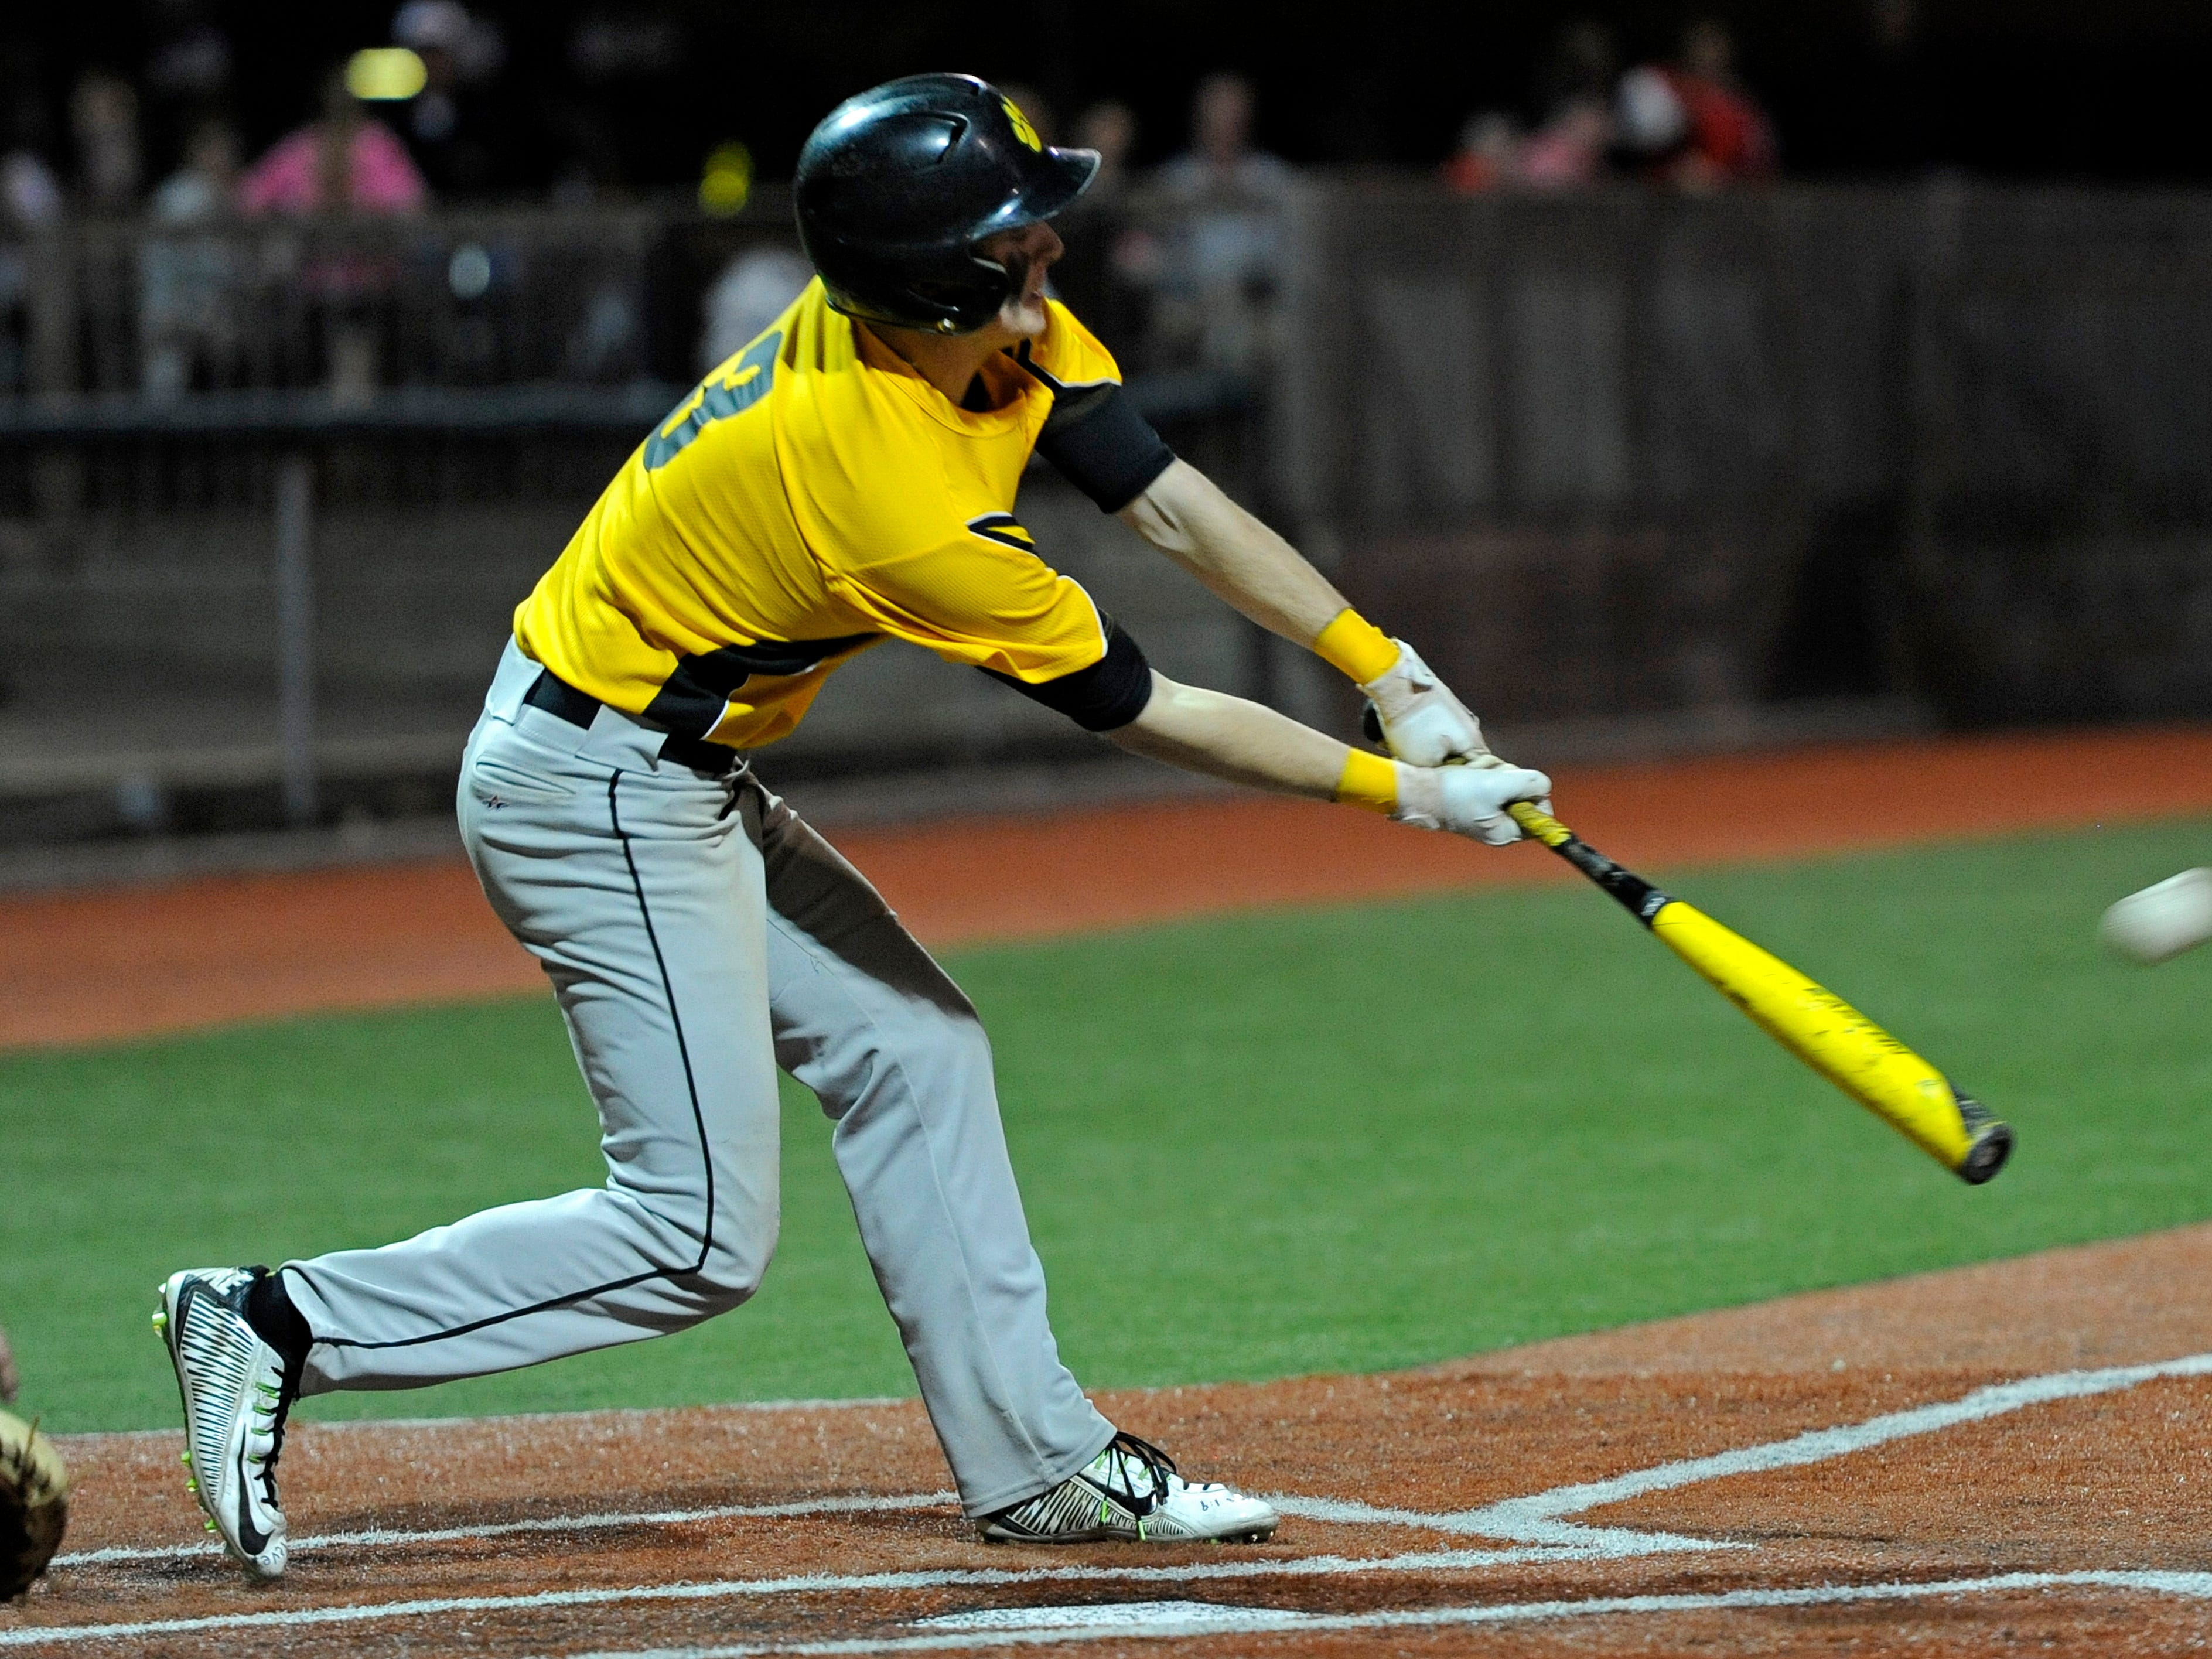 Paint Valley's Anthony McFadden bats during a game against Westfall at V.A. Memorial Stadium, earlier this season. McFadden was recognized as the 2015 SVC Baseball Player of the Year.